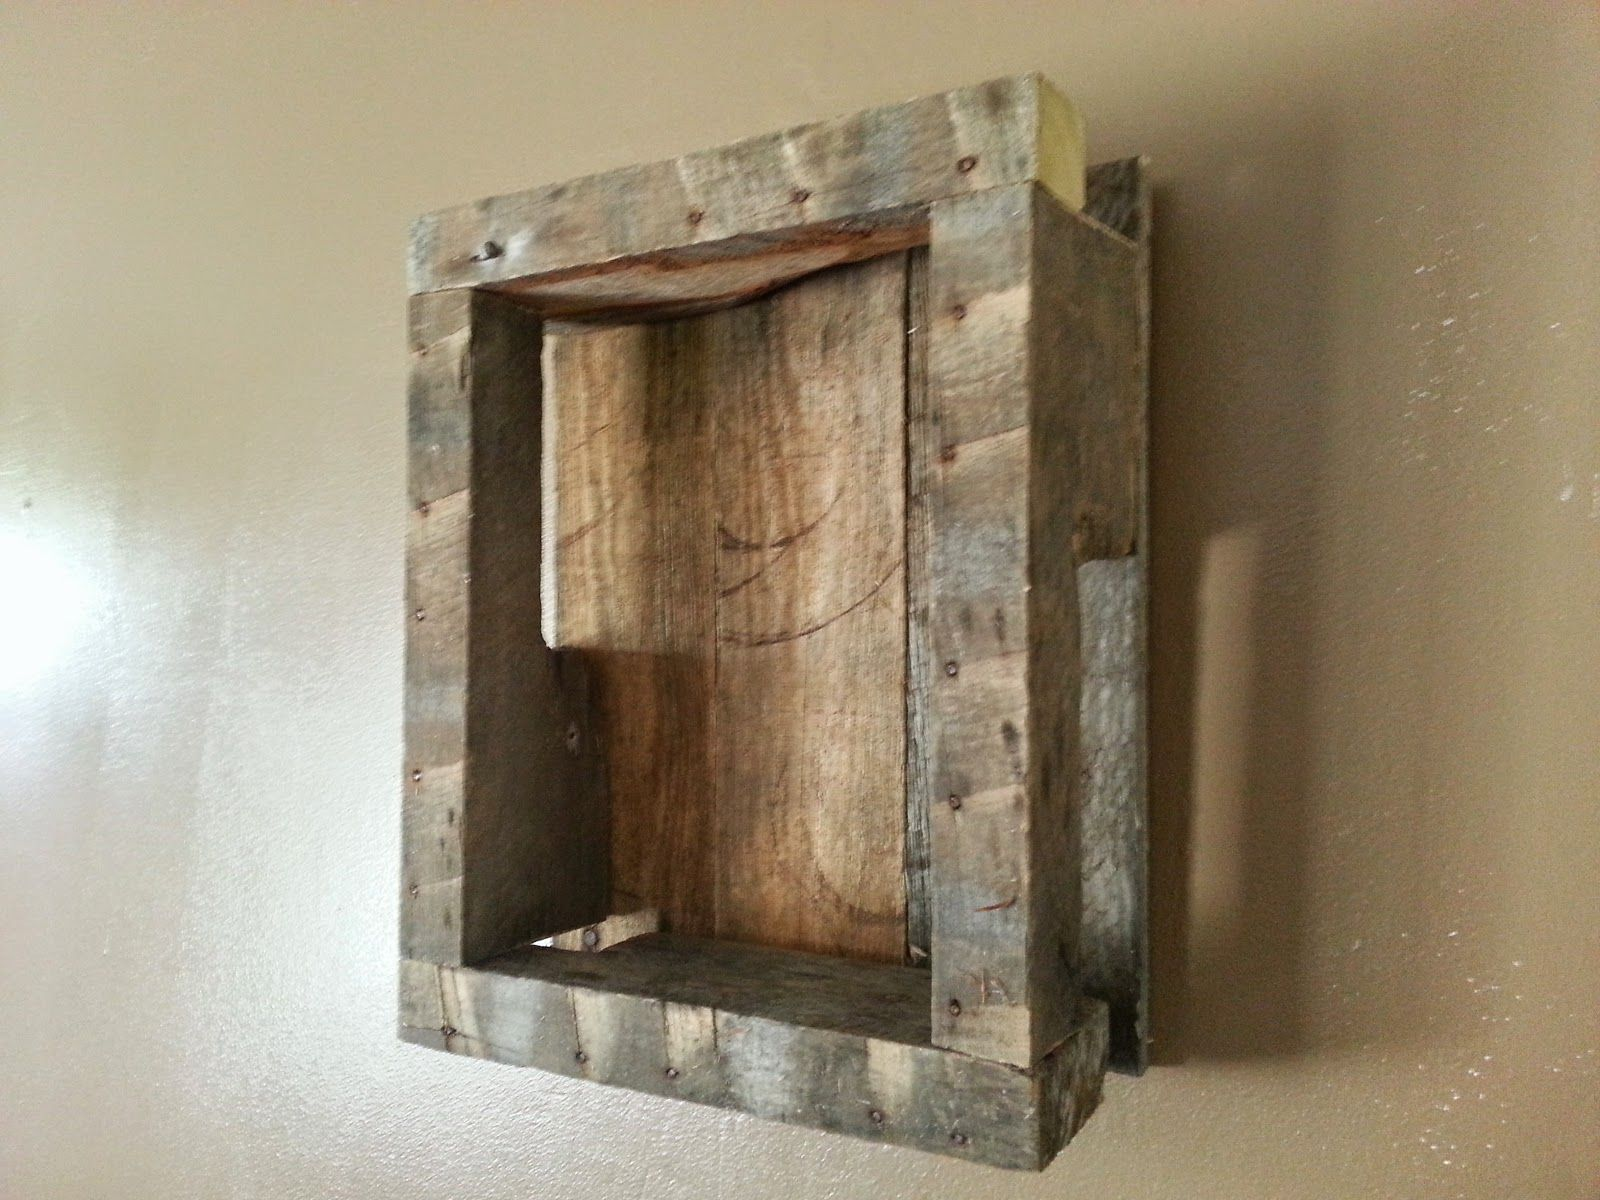 Shadow Boxes On Reclaimed Wood. #Reclaimed #Recycled